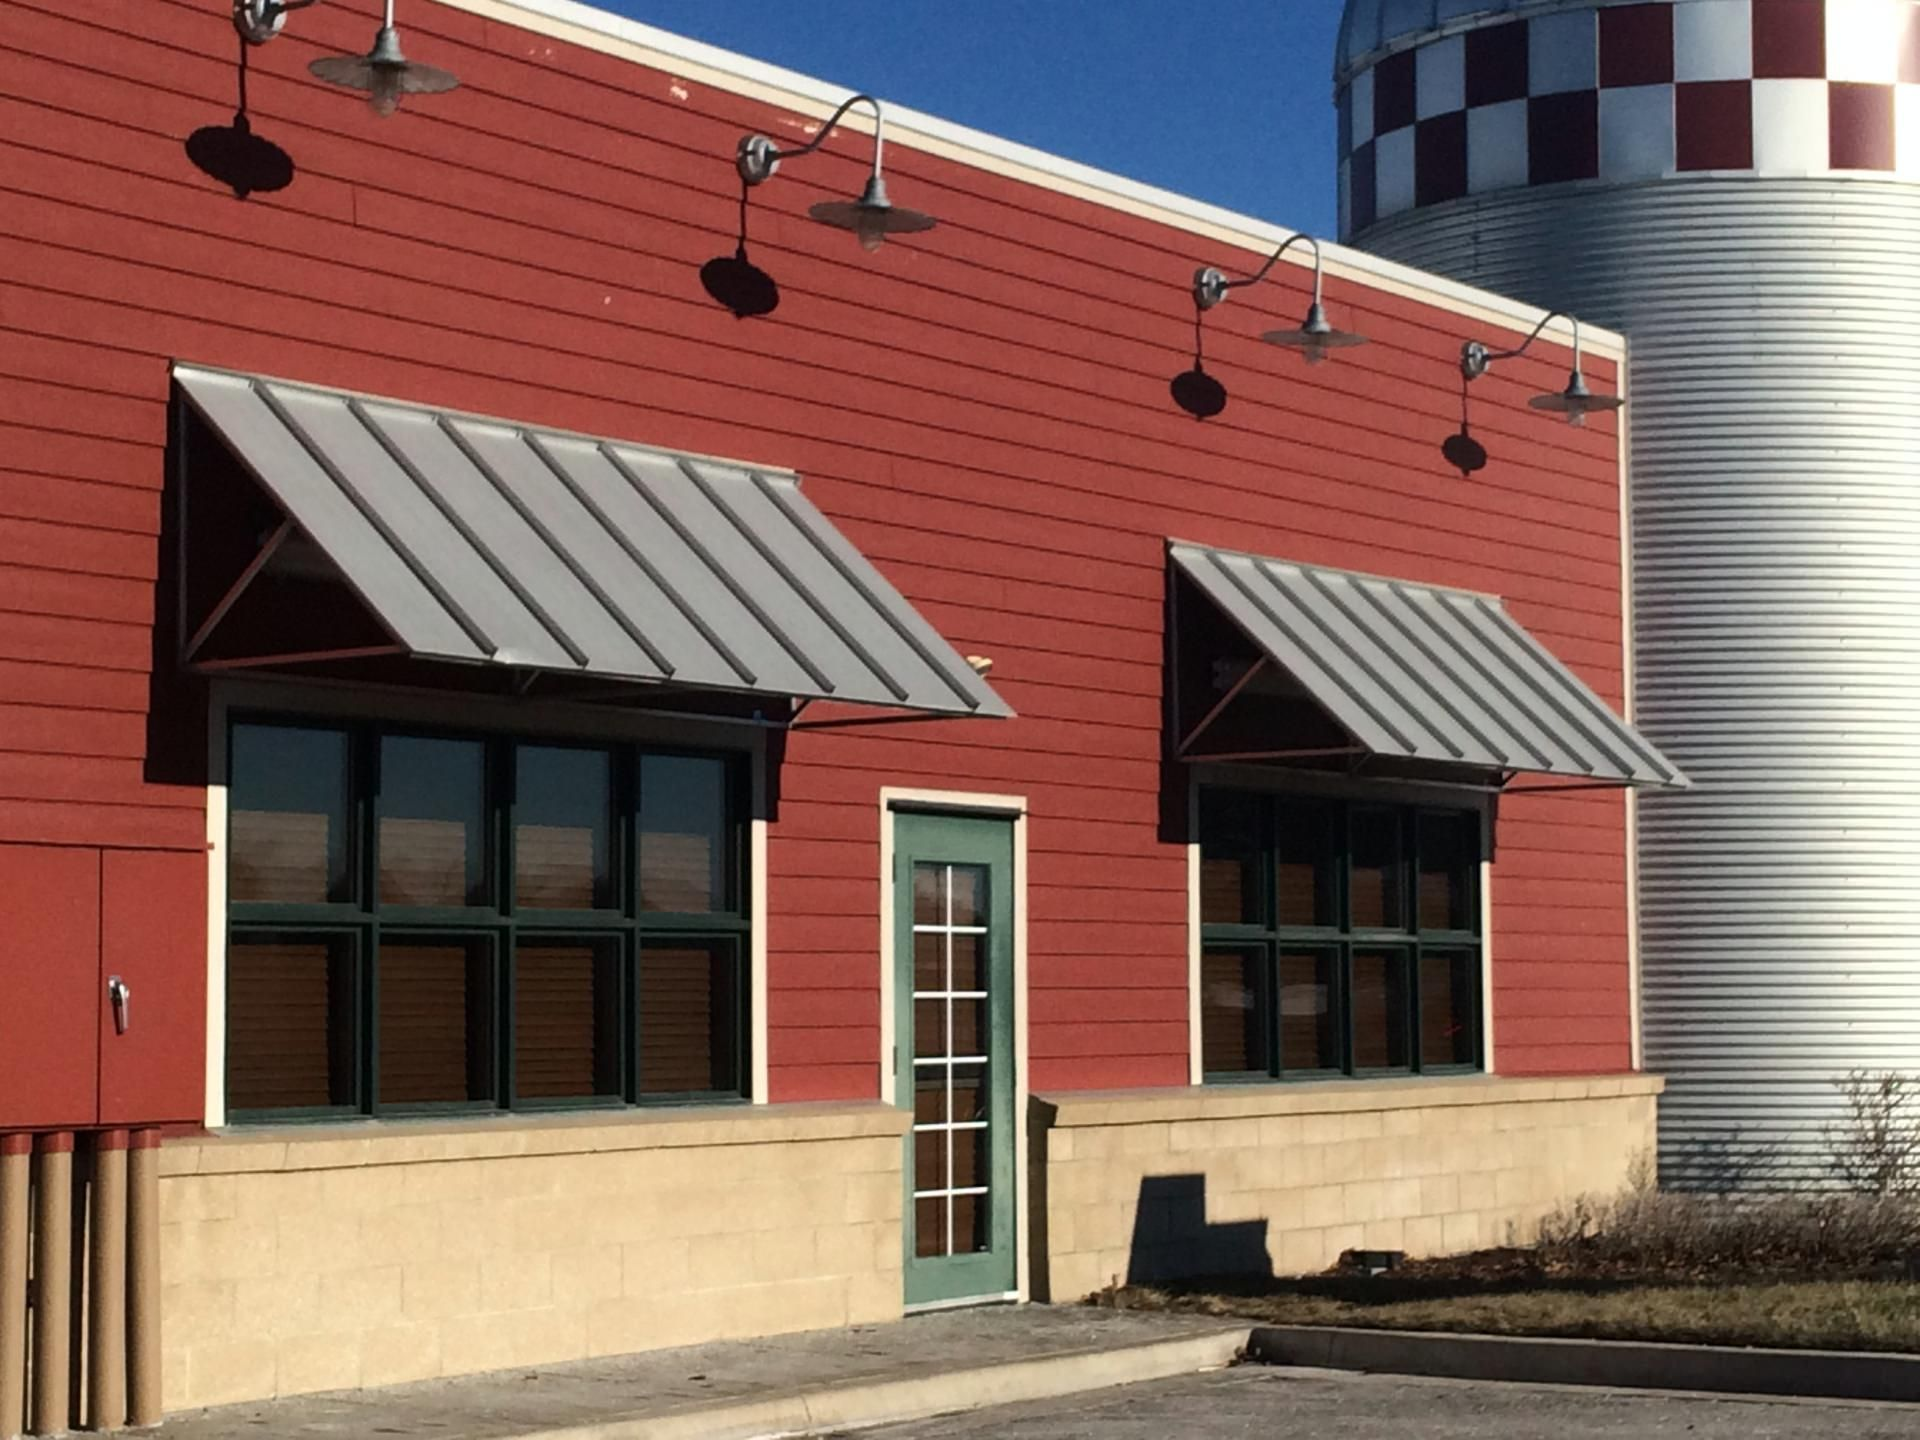 Metal Awnings Amp Canopies Ideas Cool Signage Pinterest